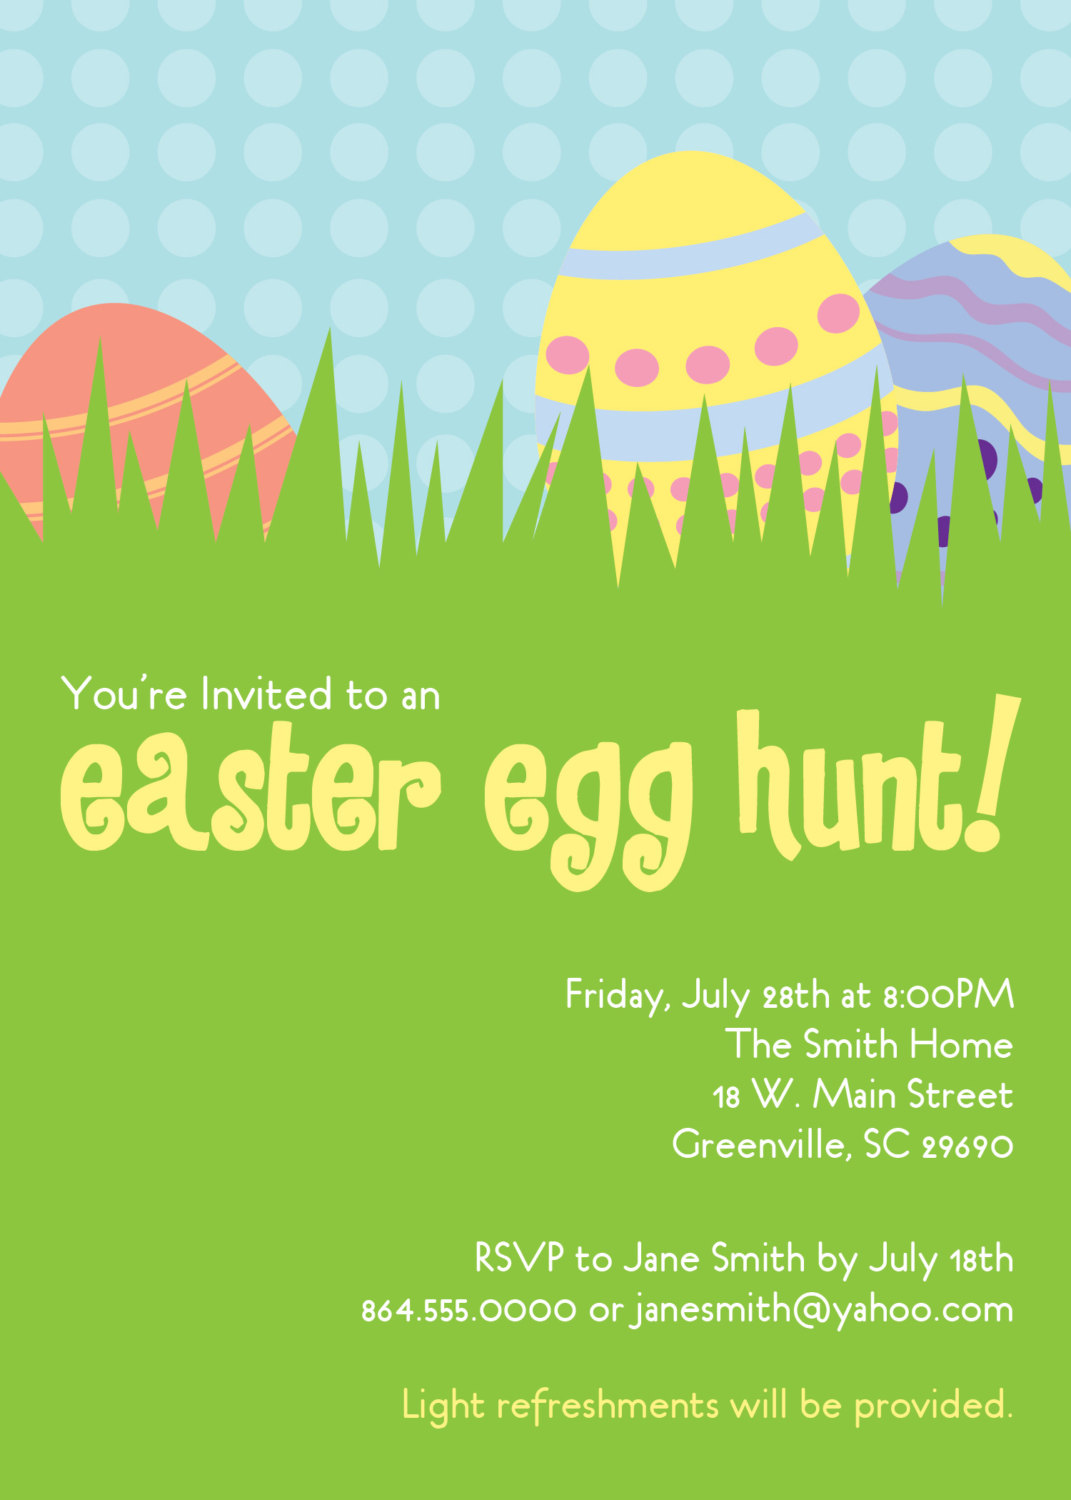 How to make easter egg hunt invitation clipart free clipart library library How to make easter egg hunt invitation clipart free - ClipartFest clipart library library